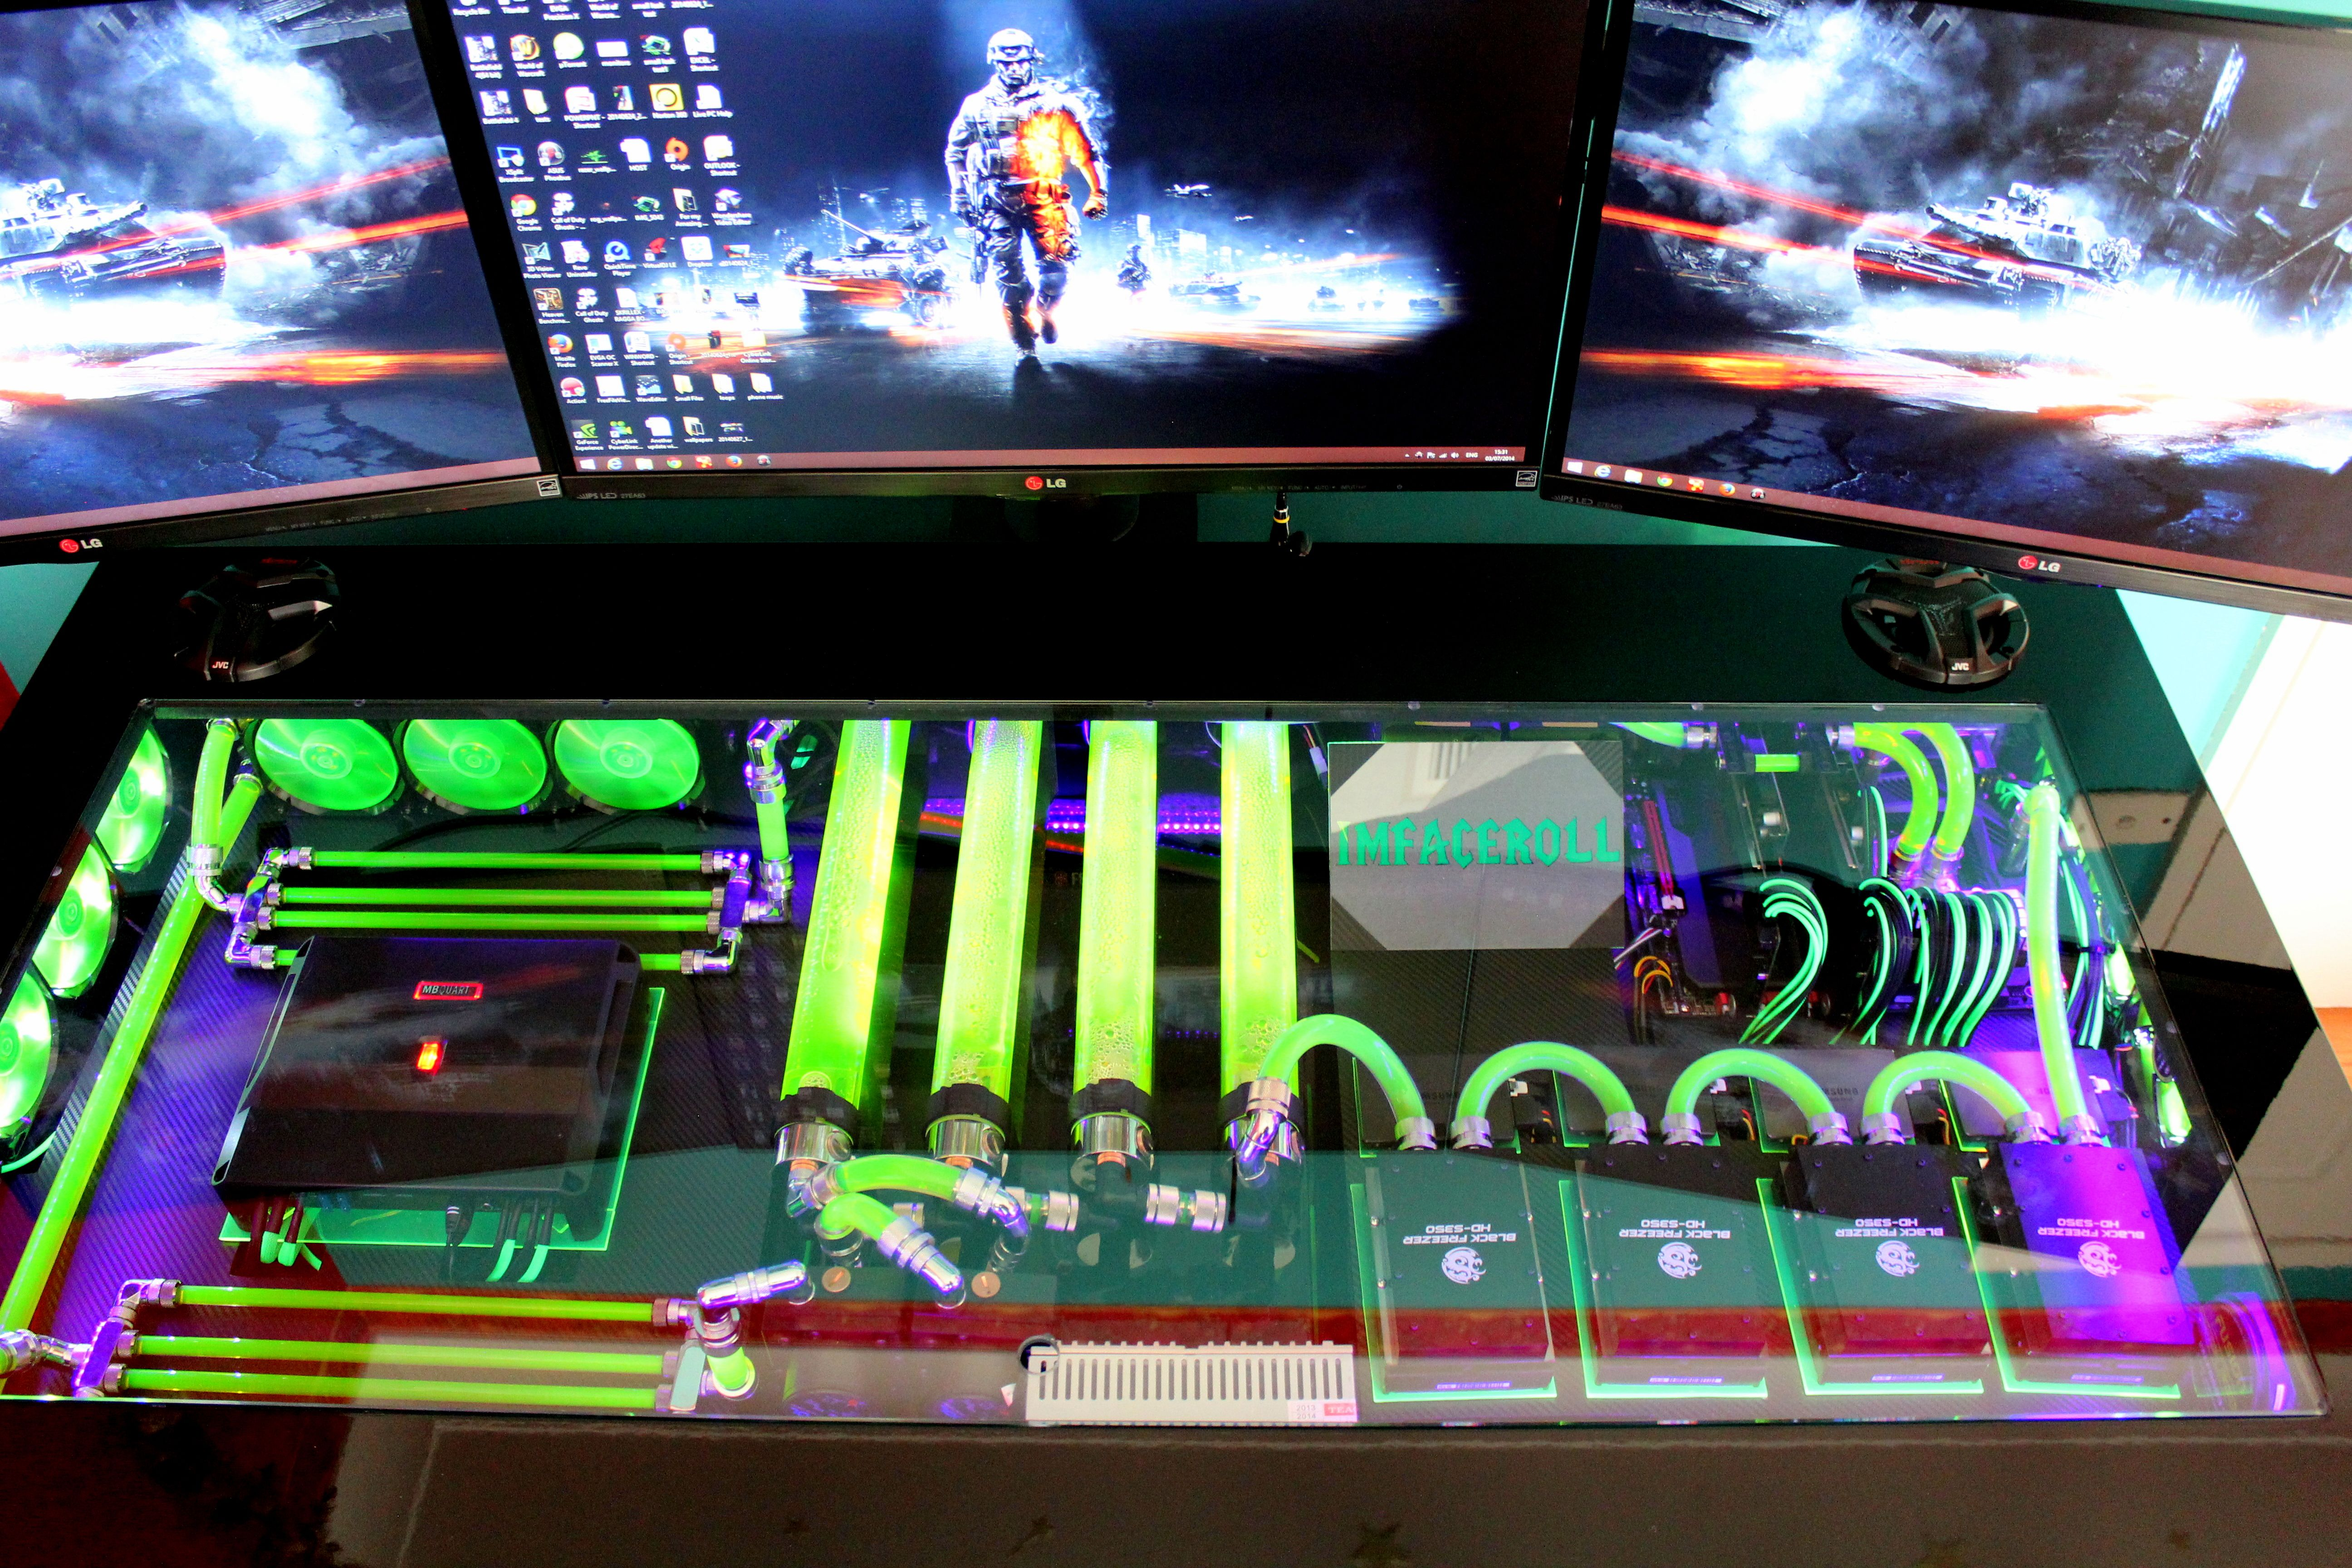 My Computer Rig Tower Pc Gaming Setup Liquid Cooled Bf4 Battle Field Wall Paper Www Facebook Com Imfacerollgaming Www Yo Pc Gaming Setup Gaming Setup Custom Pc